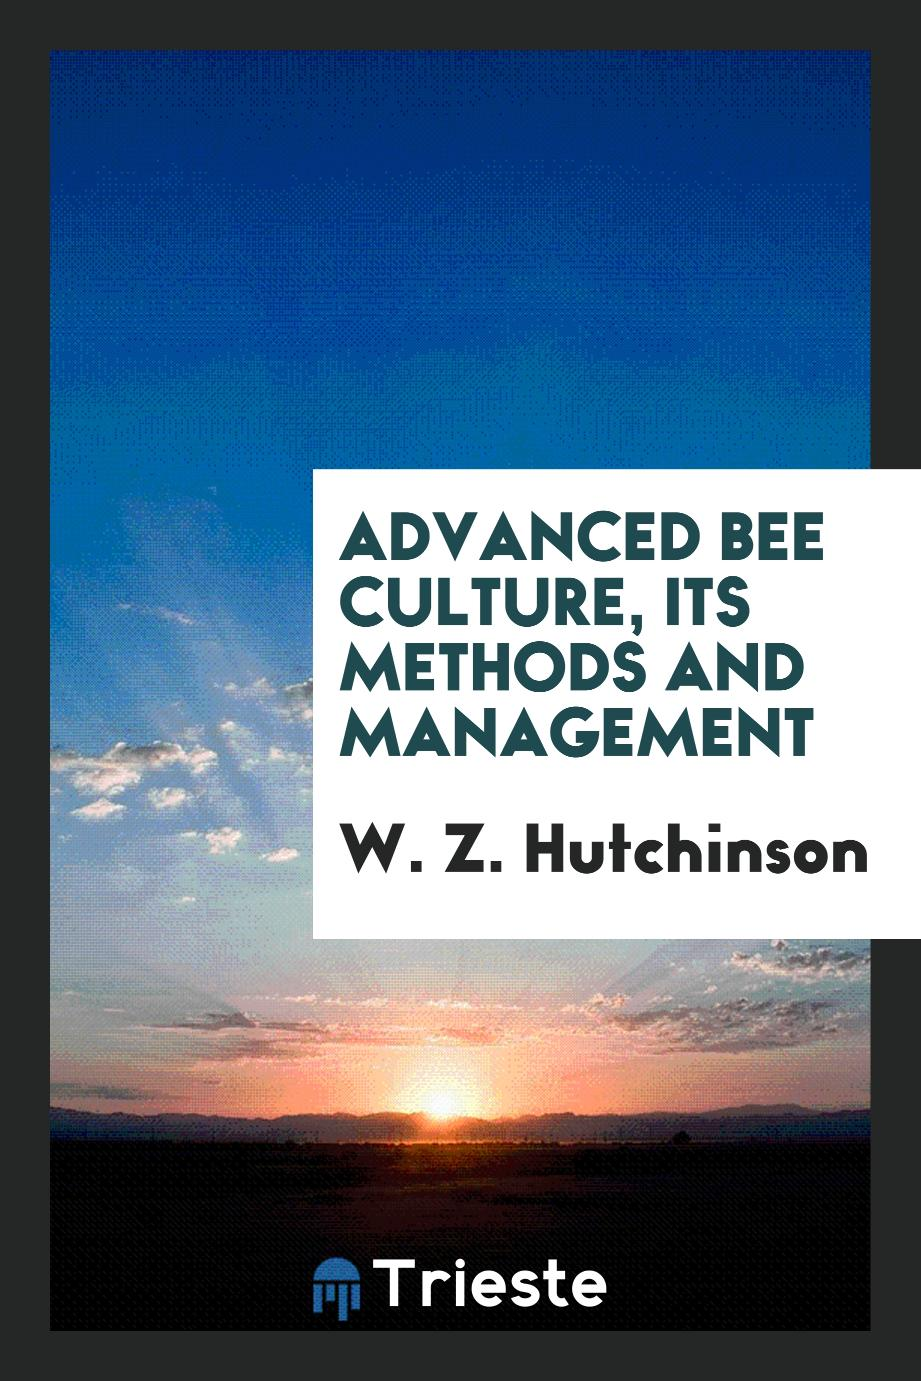 Advanced Bee Culture, Its Methods and Management